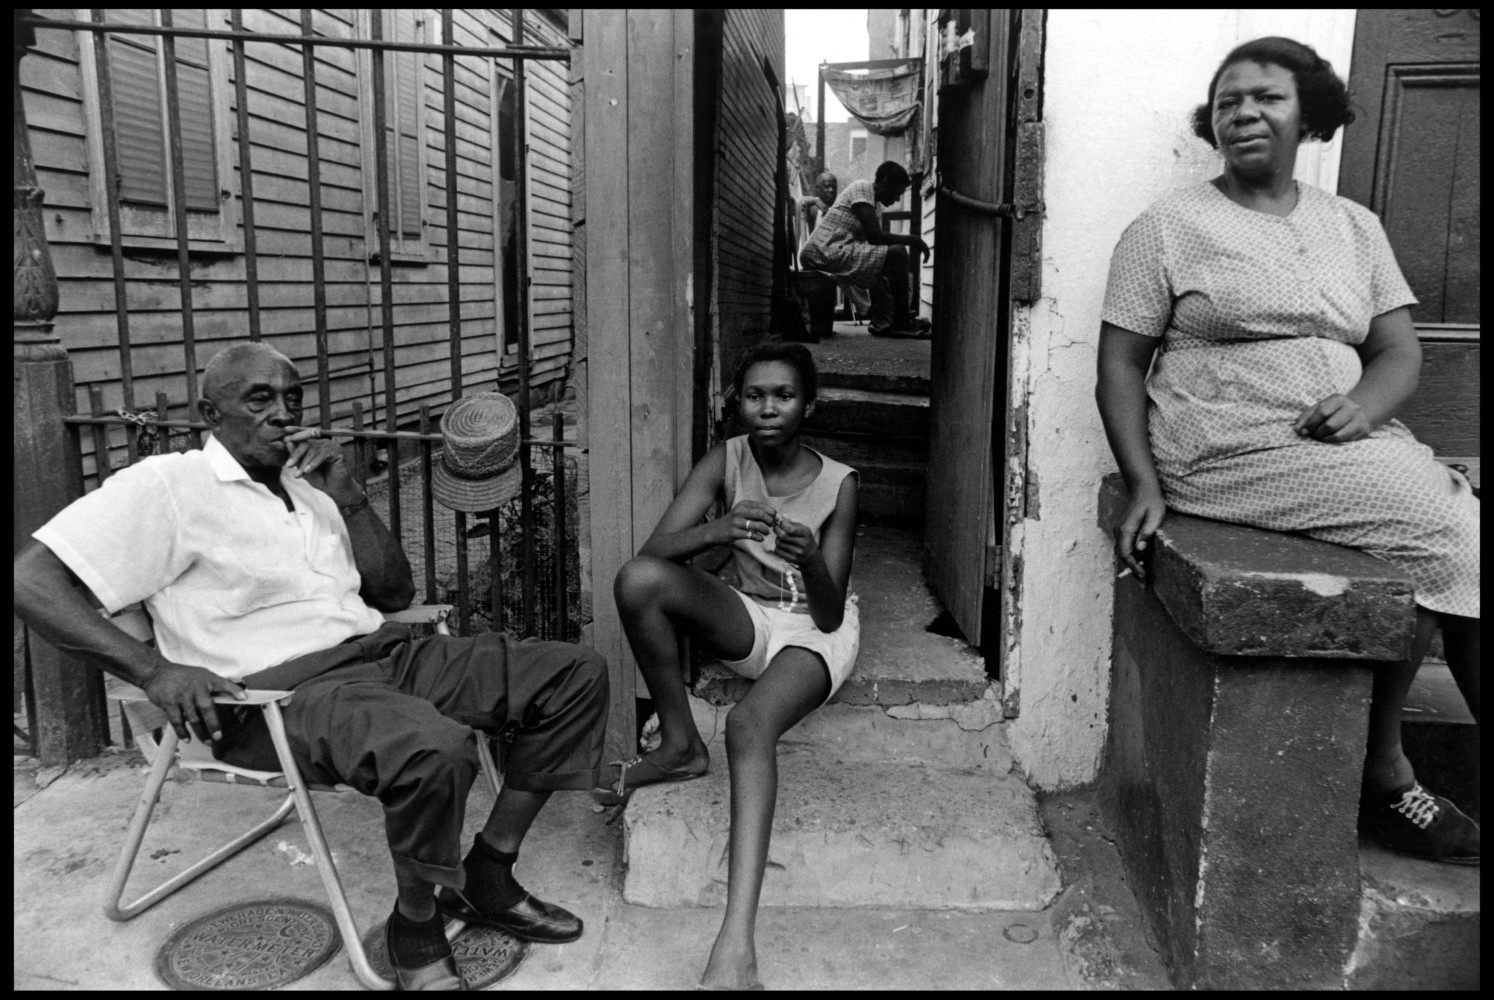 I Became a Photographer in New Orleans • Abbas